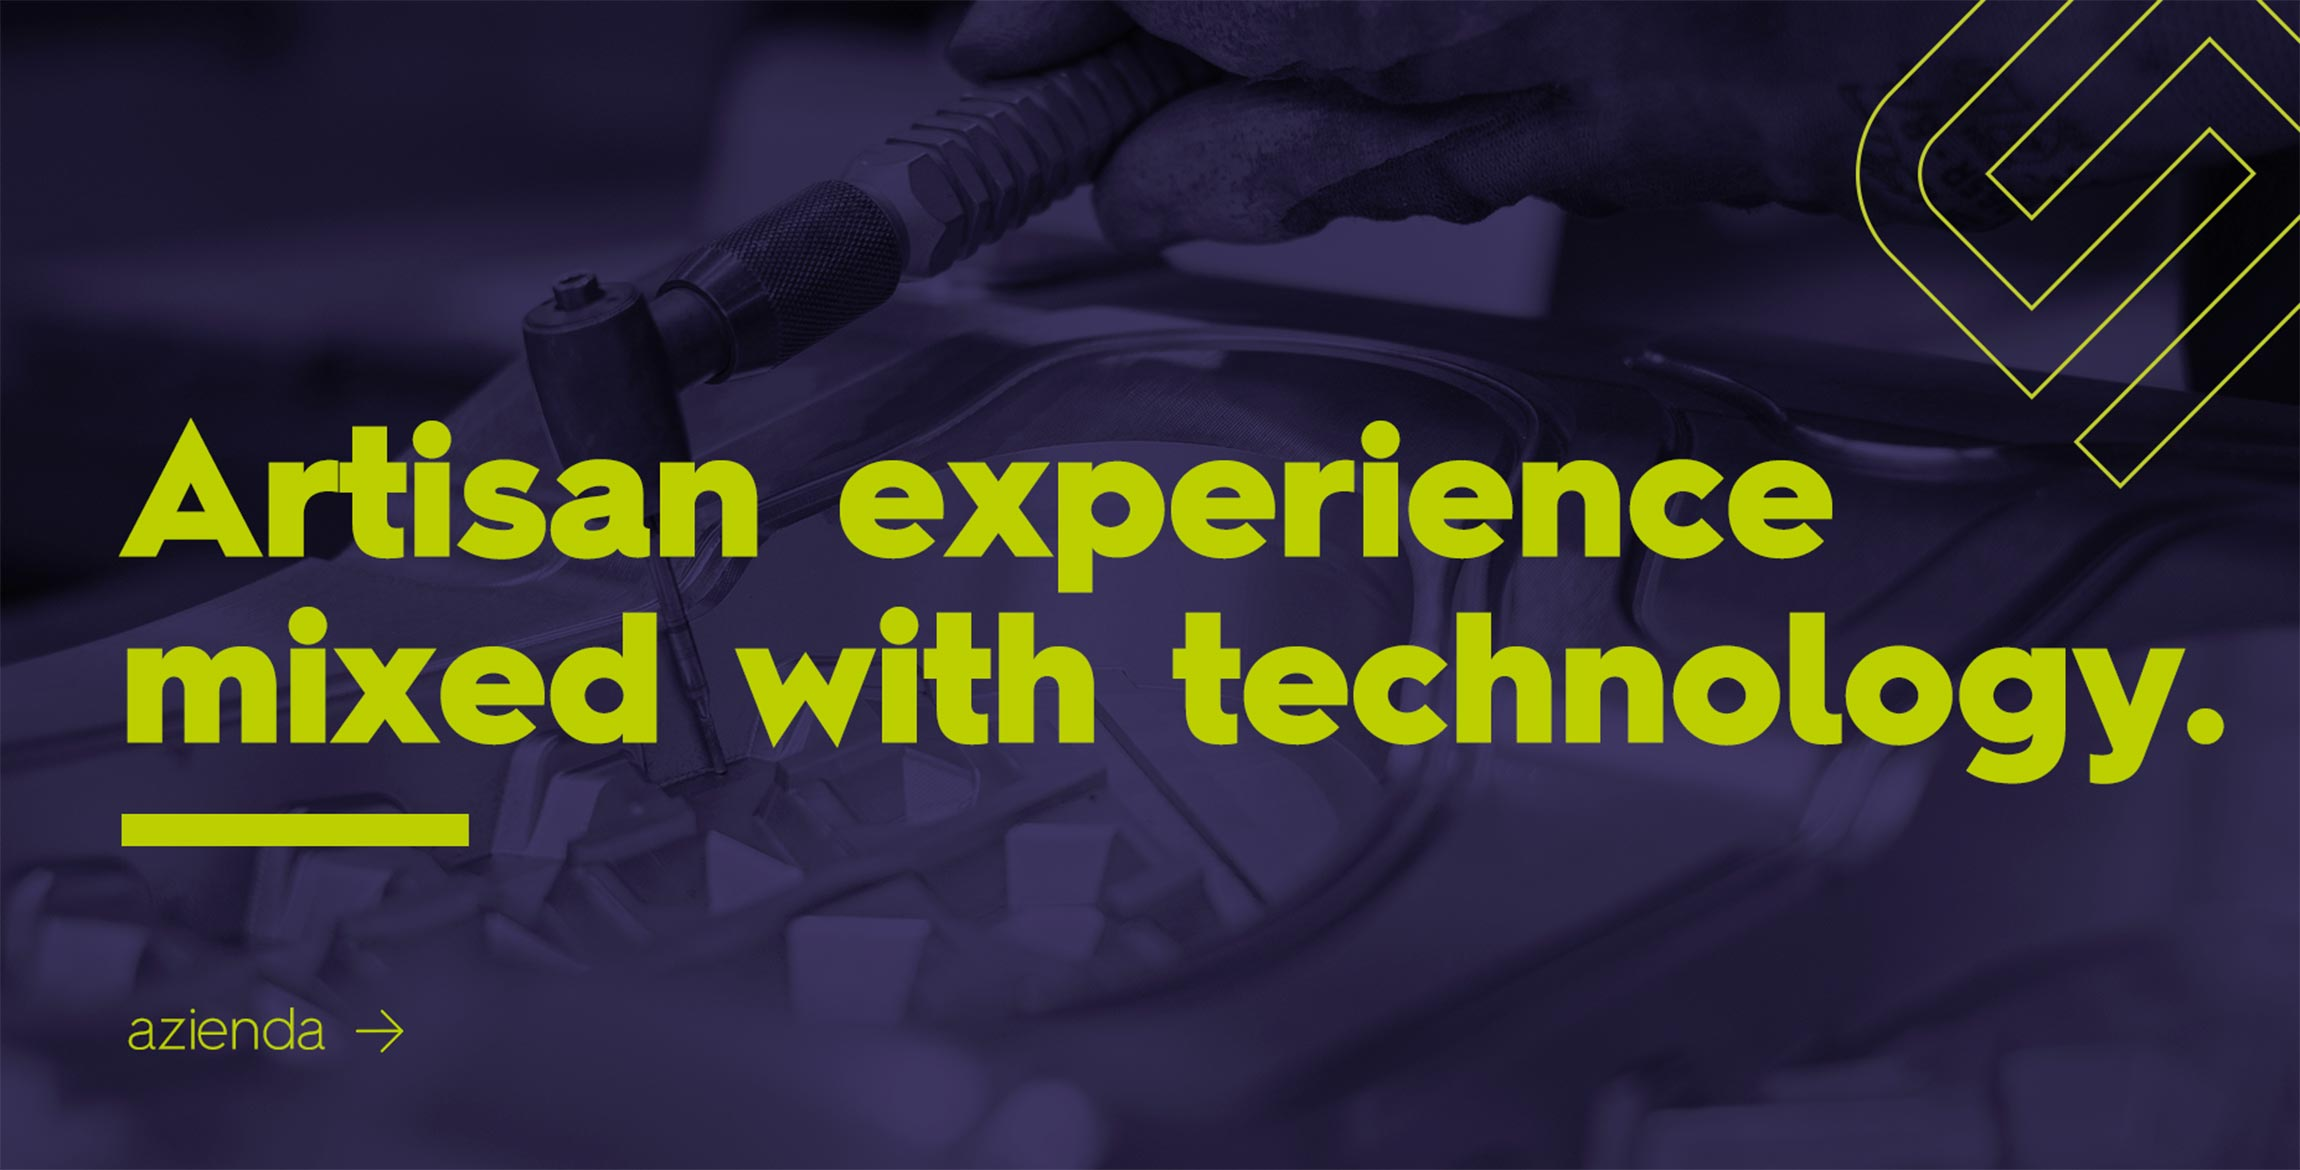 ARTISAN EXPERIENCE MIXED WITH TECHNOLOGY